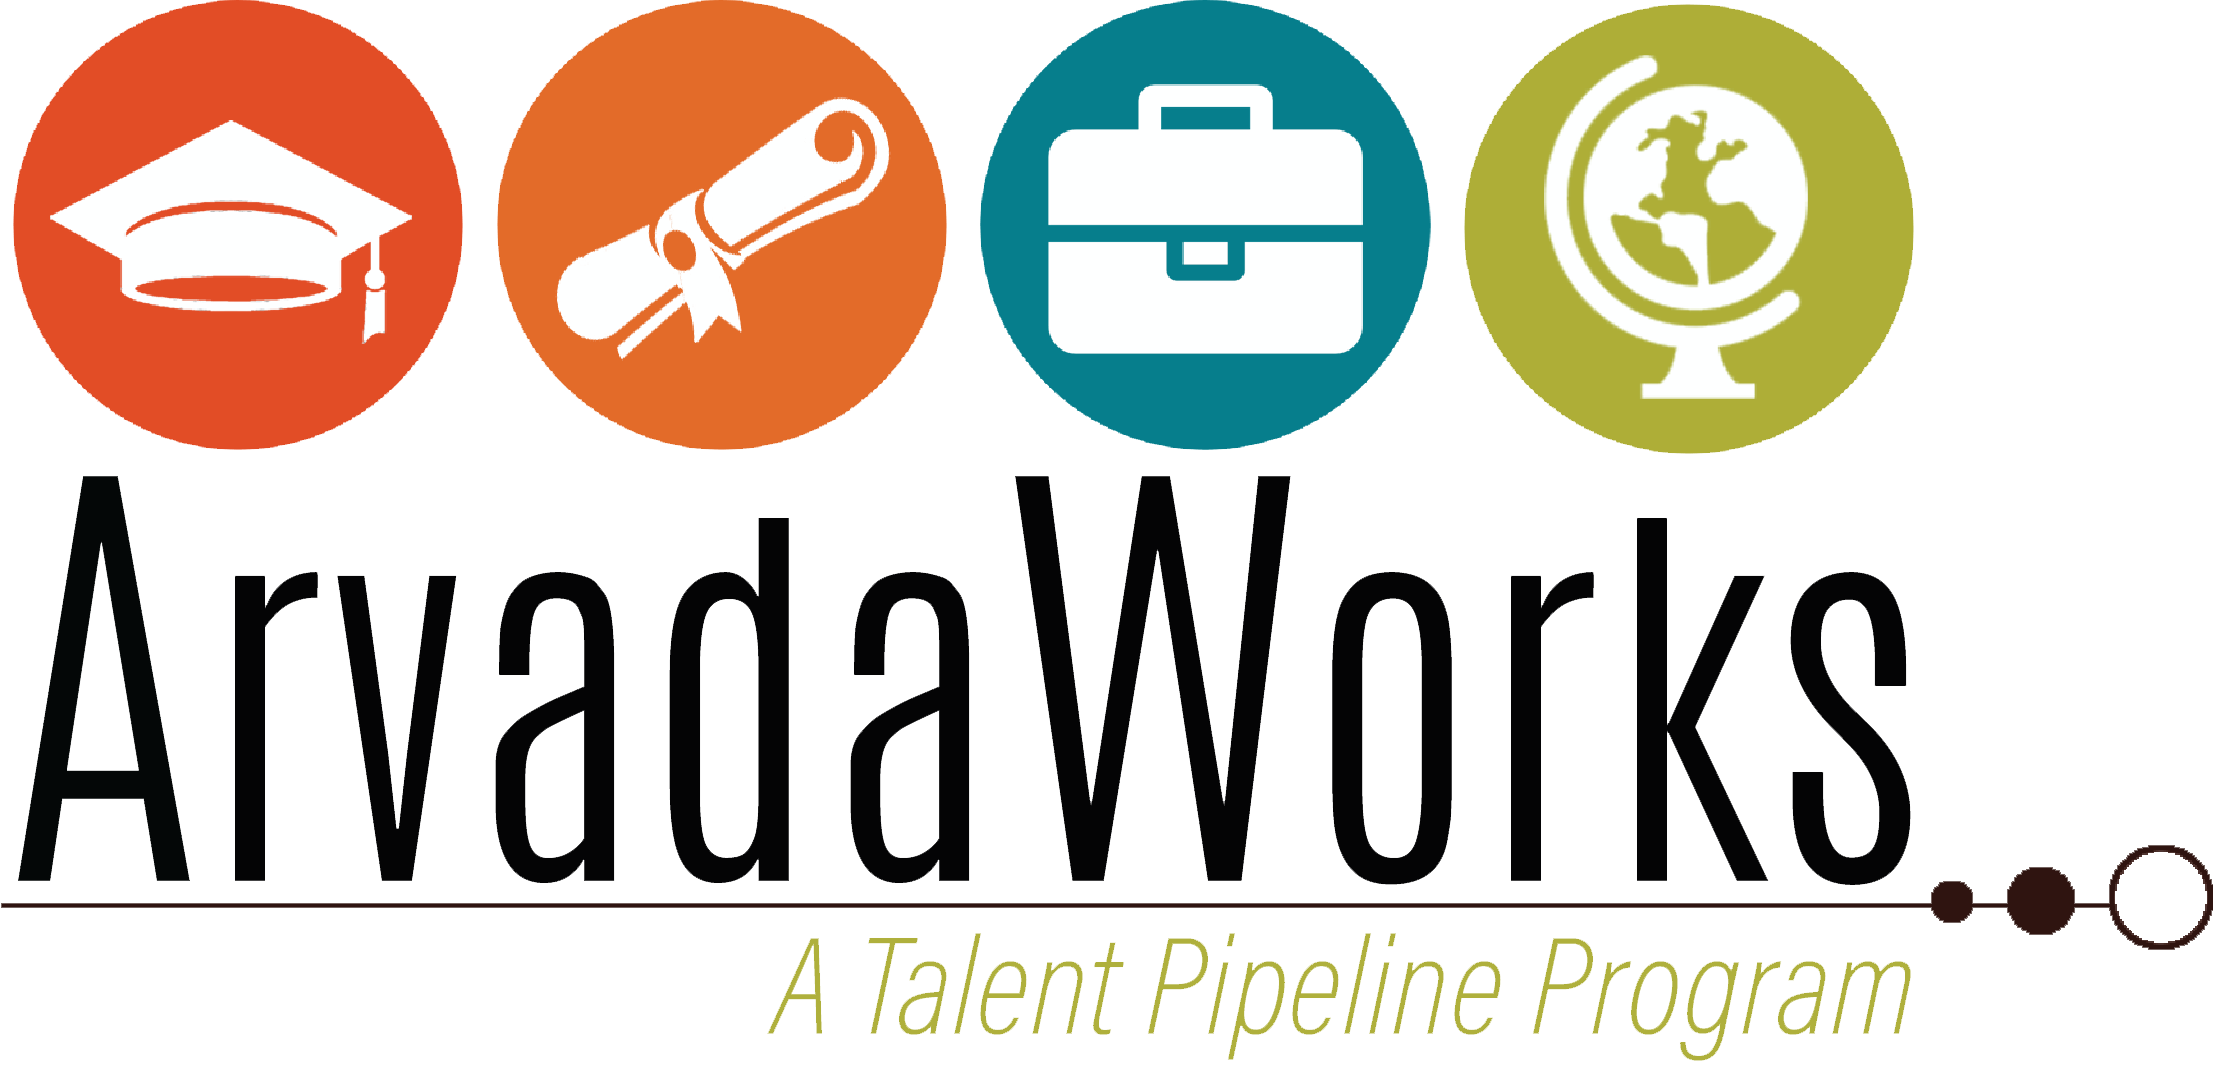 Arvada Works Program Update | March 2019